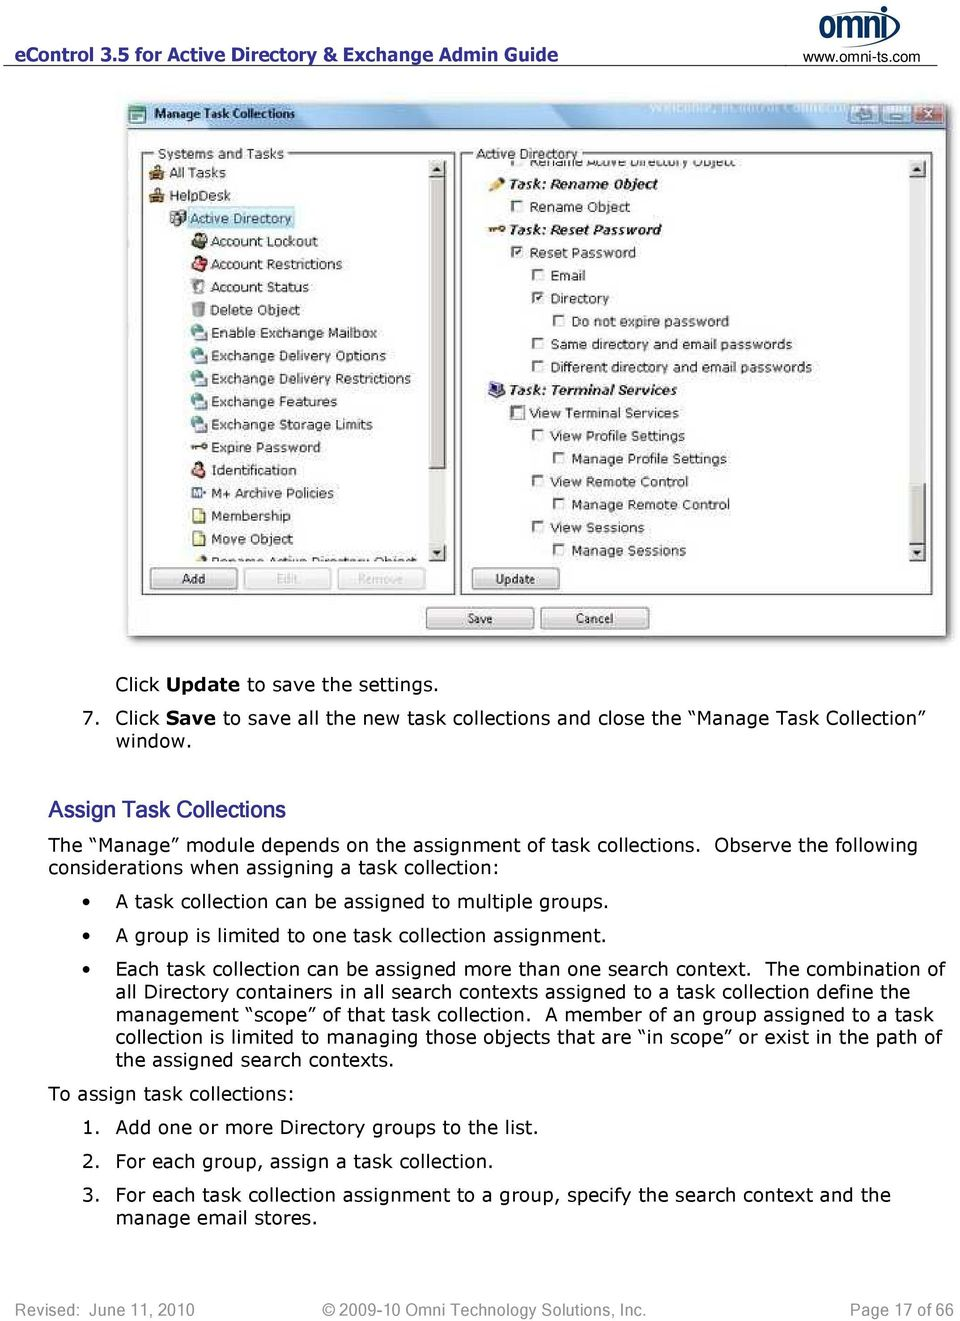 Observe the following considerations when assigning a task collection: A task collection can be assigned to multiple groups. A group is limited to one task collection assignment.